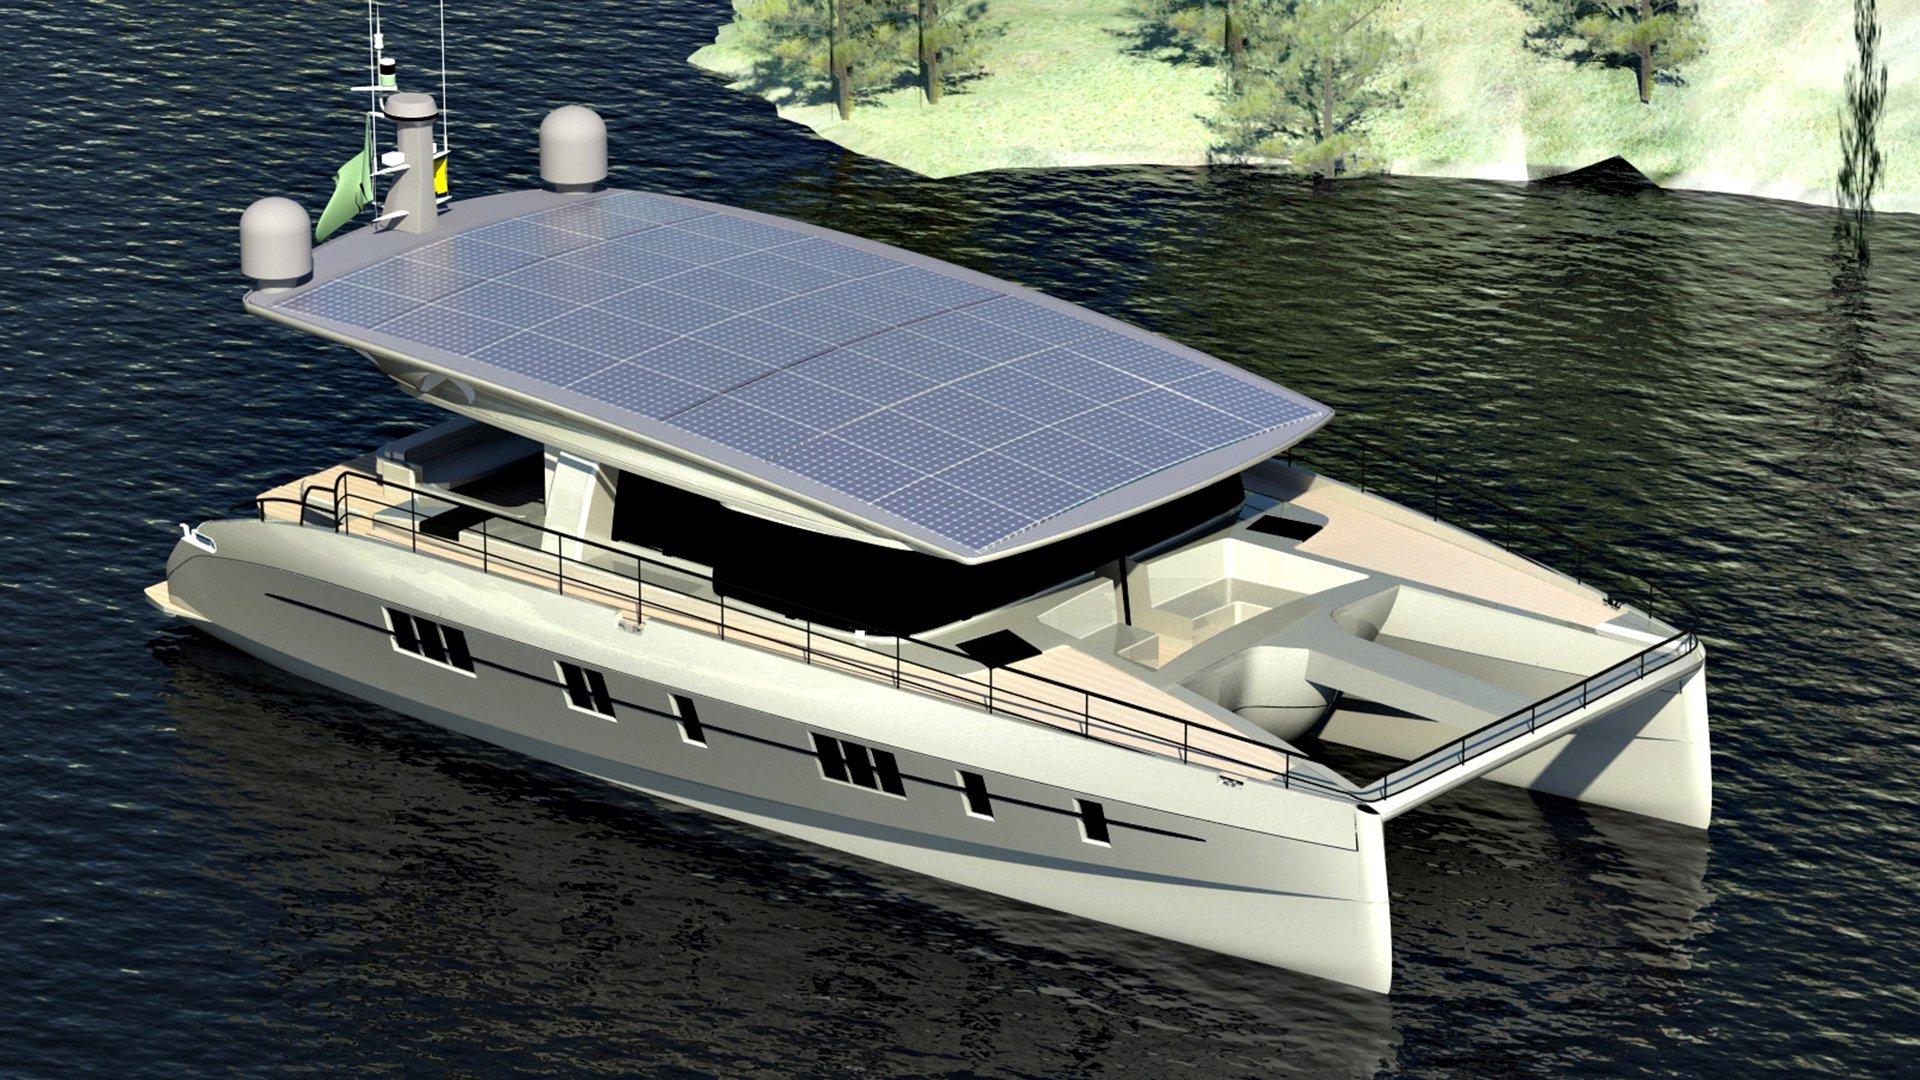 How To Charge Marine And Rv Batteries In Parallel moreover Dual Battery Wiring Diagram as well Mobile Gem Car Repair San Diego further Parallel Charging Using Multiple Controllers Separate Pv Arrays additionally Catamaran Powered By Sun. on charging boat batteries in series